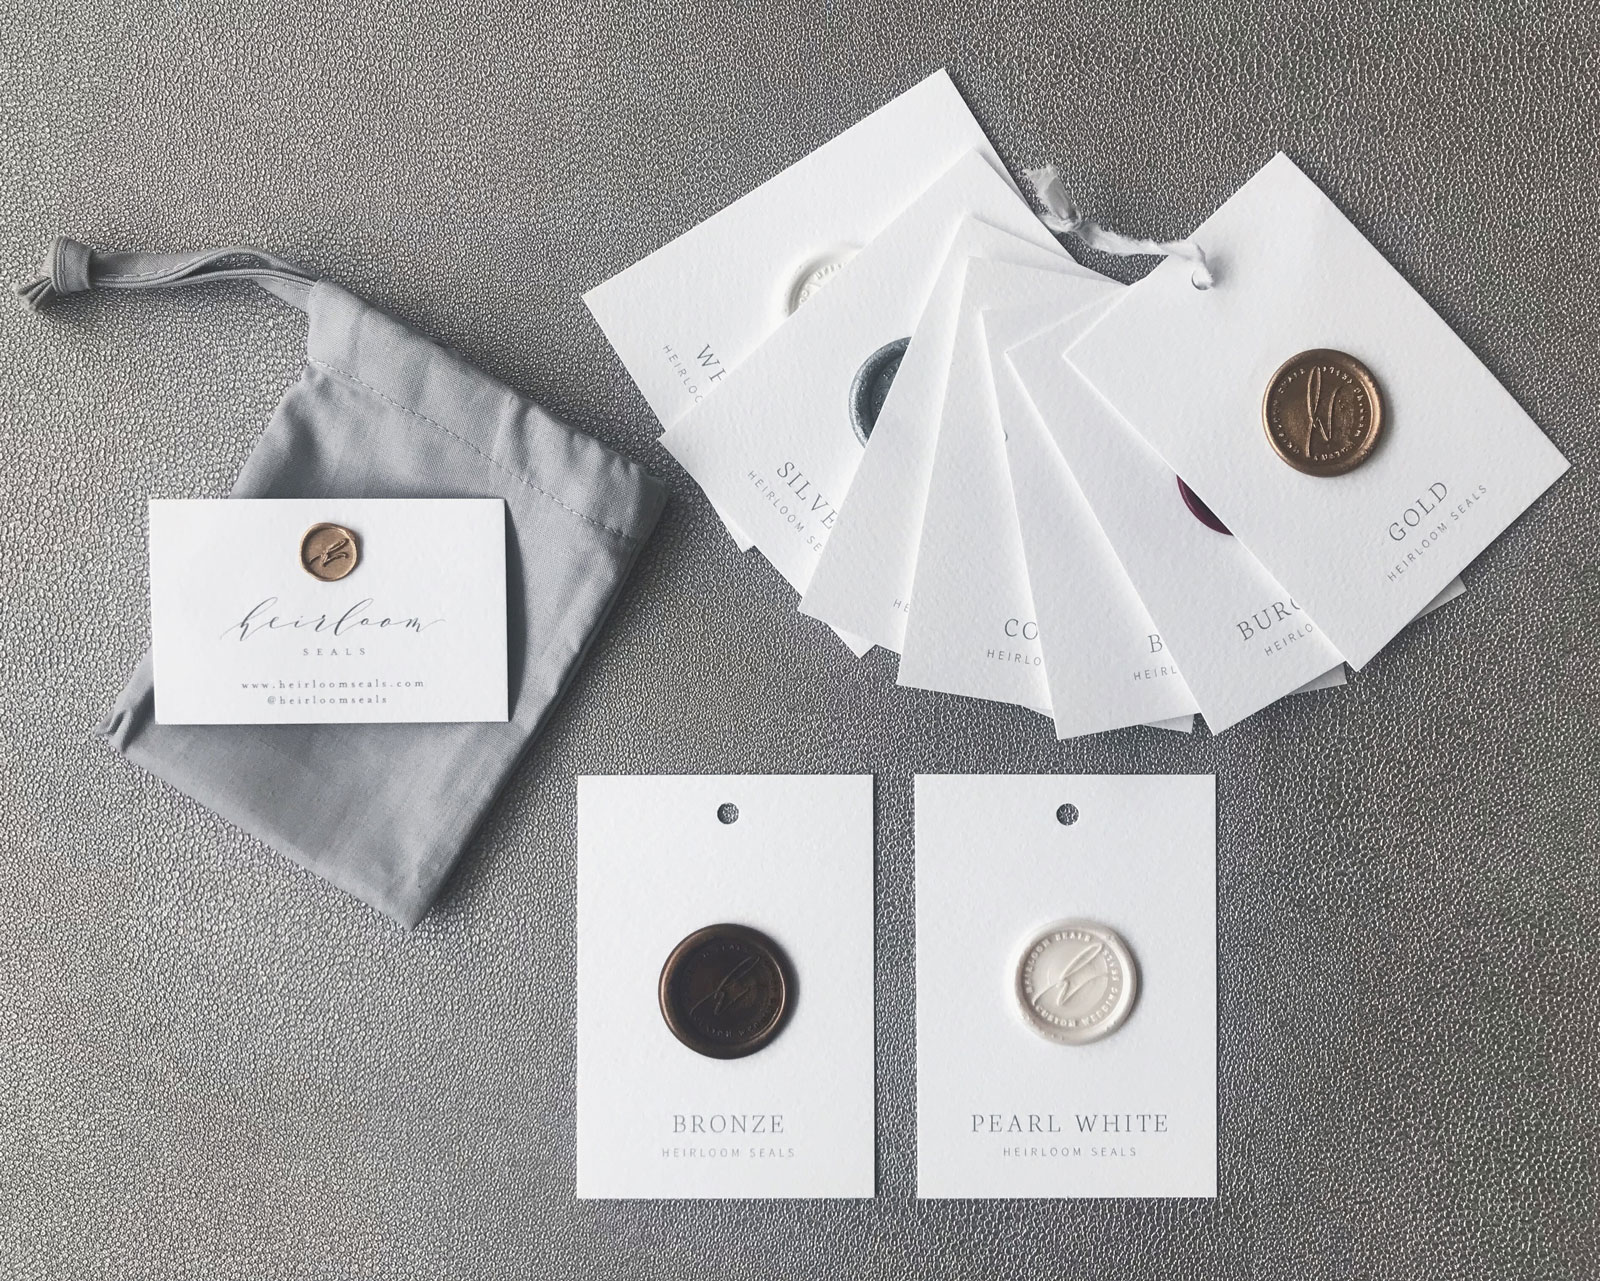 Wax Seals, Wax Seal Stamps, Invitation Seals, Wax Seal